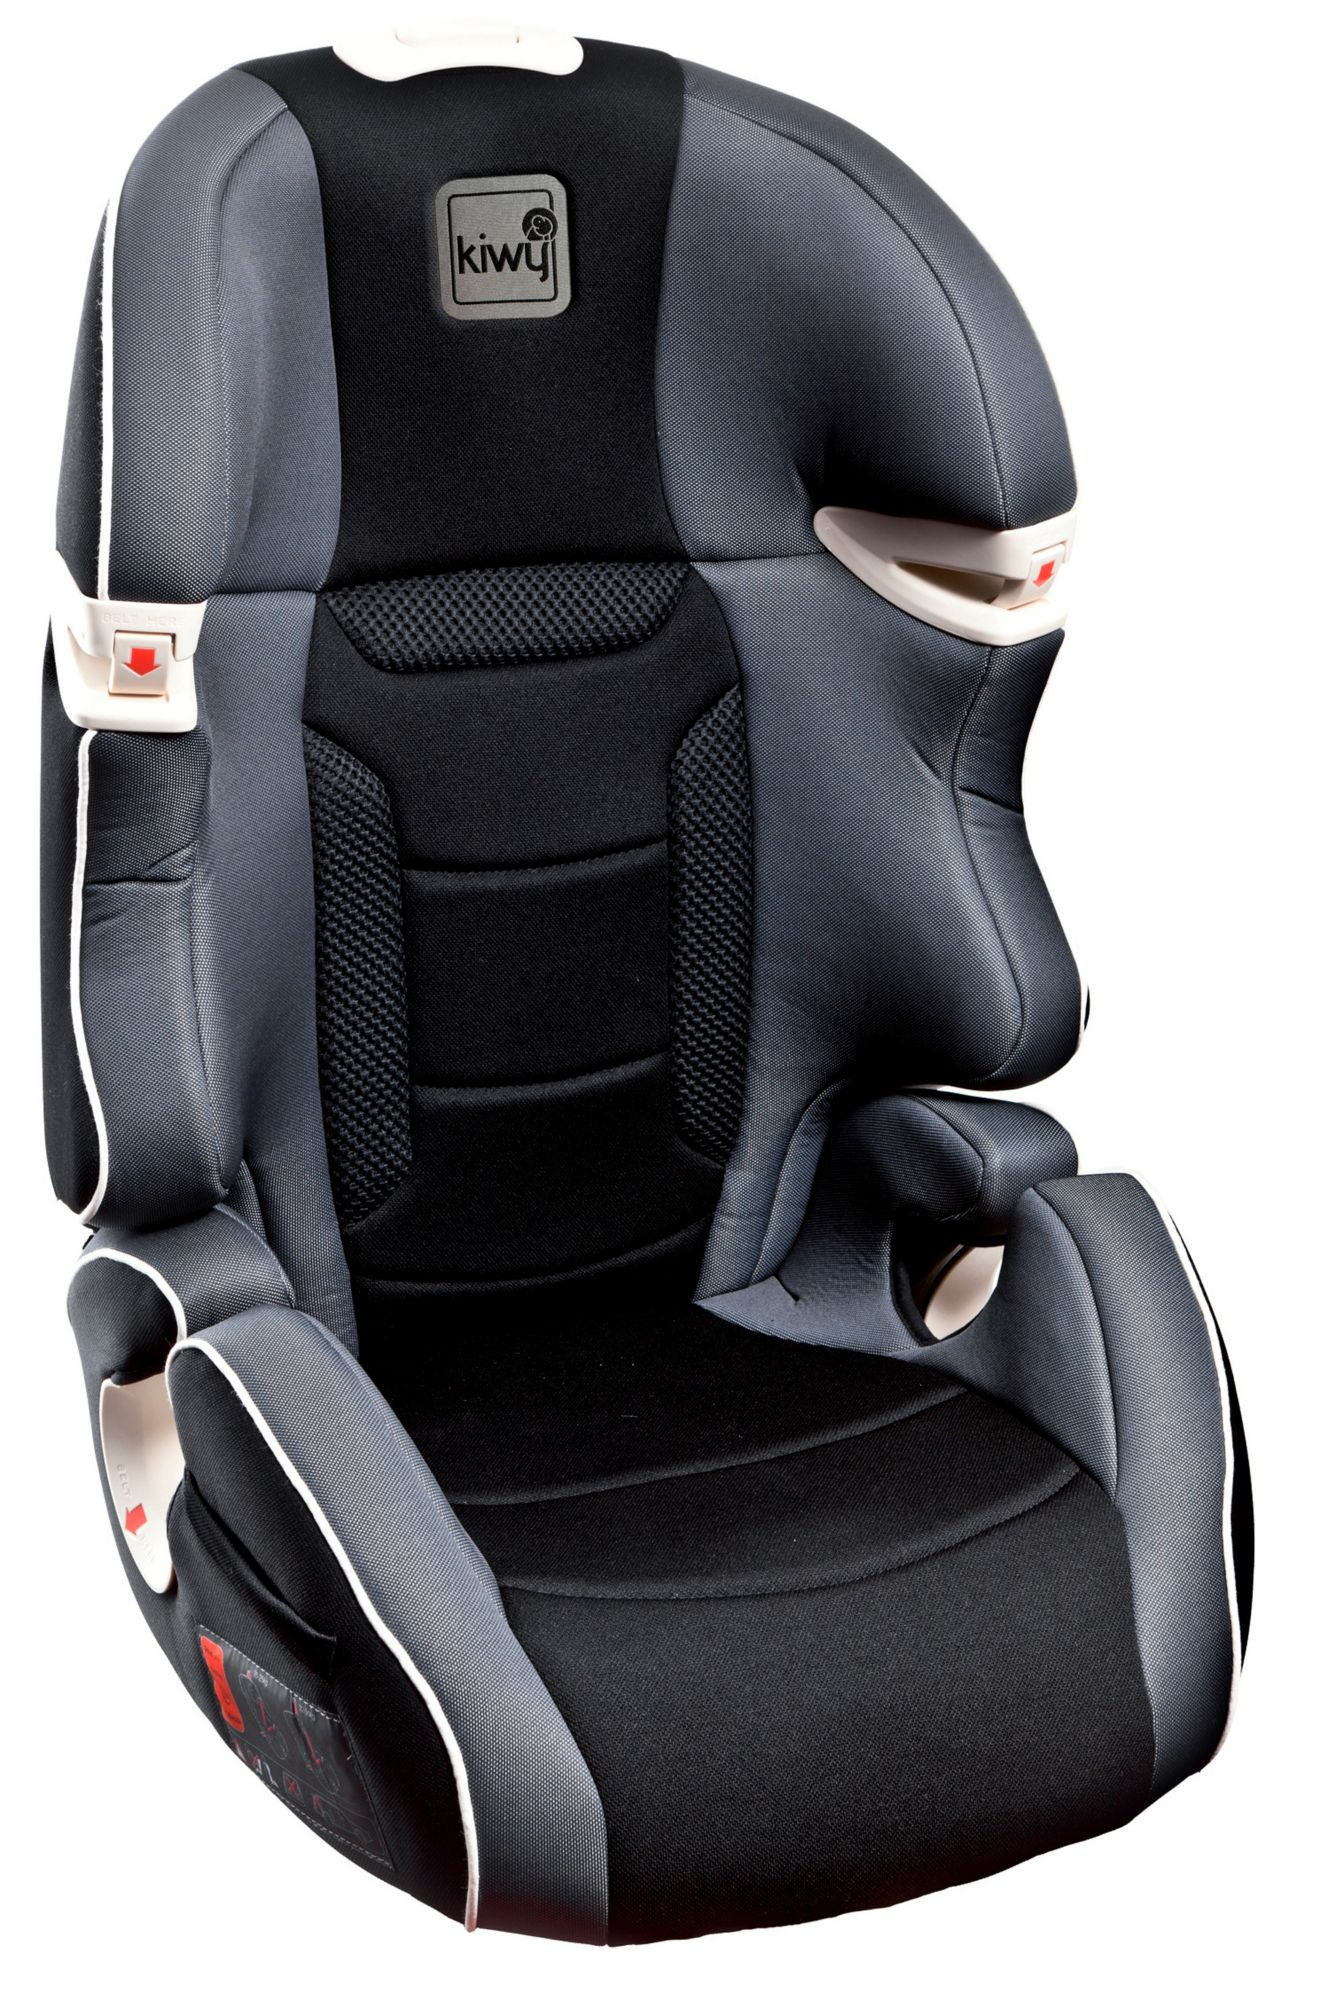 kindersitz slf23 15 36 kg mit isofix schwab versand kindersitze 15 36 kg. Black Bedroom Furniture Sets. Home Design Ideas